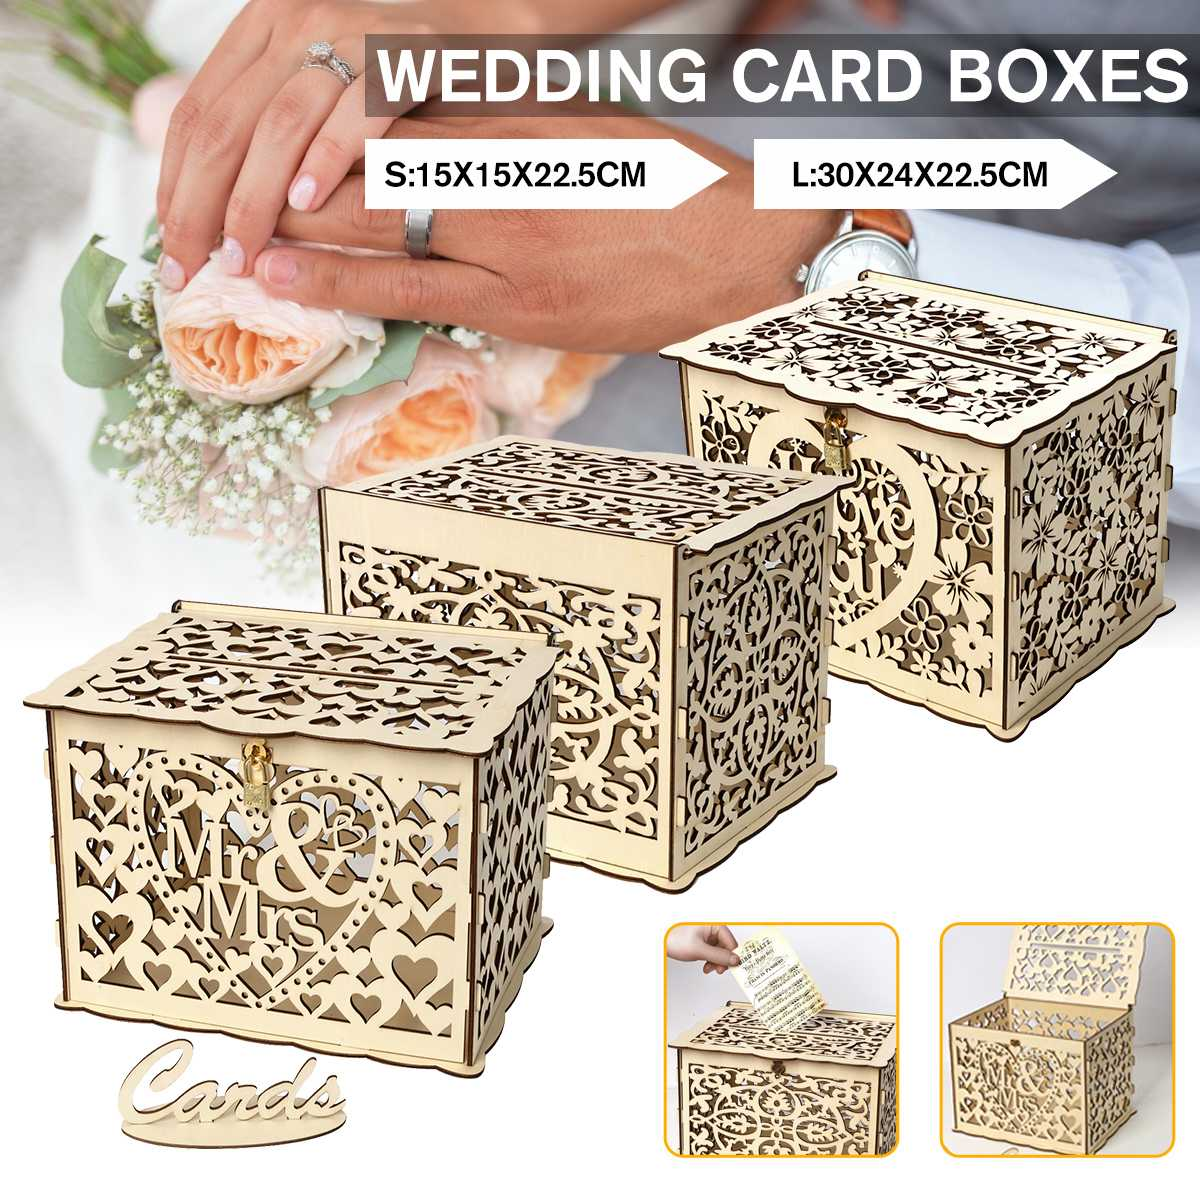 S/M/L Size DIY Wedding Gift Card Box Wooden Money Box With Lock Beautiful Wedding Decoration Supplies For Birthday Party